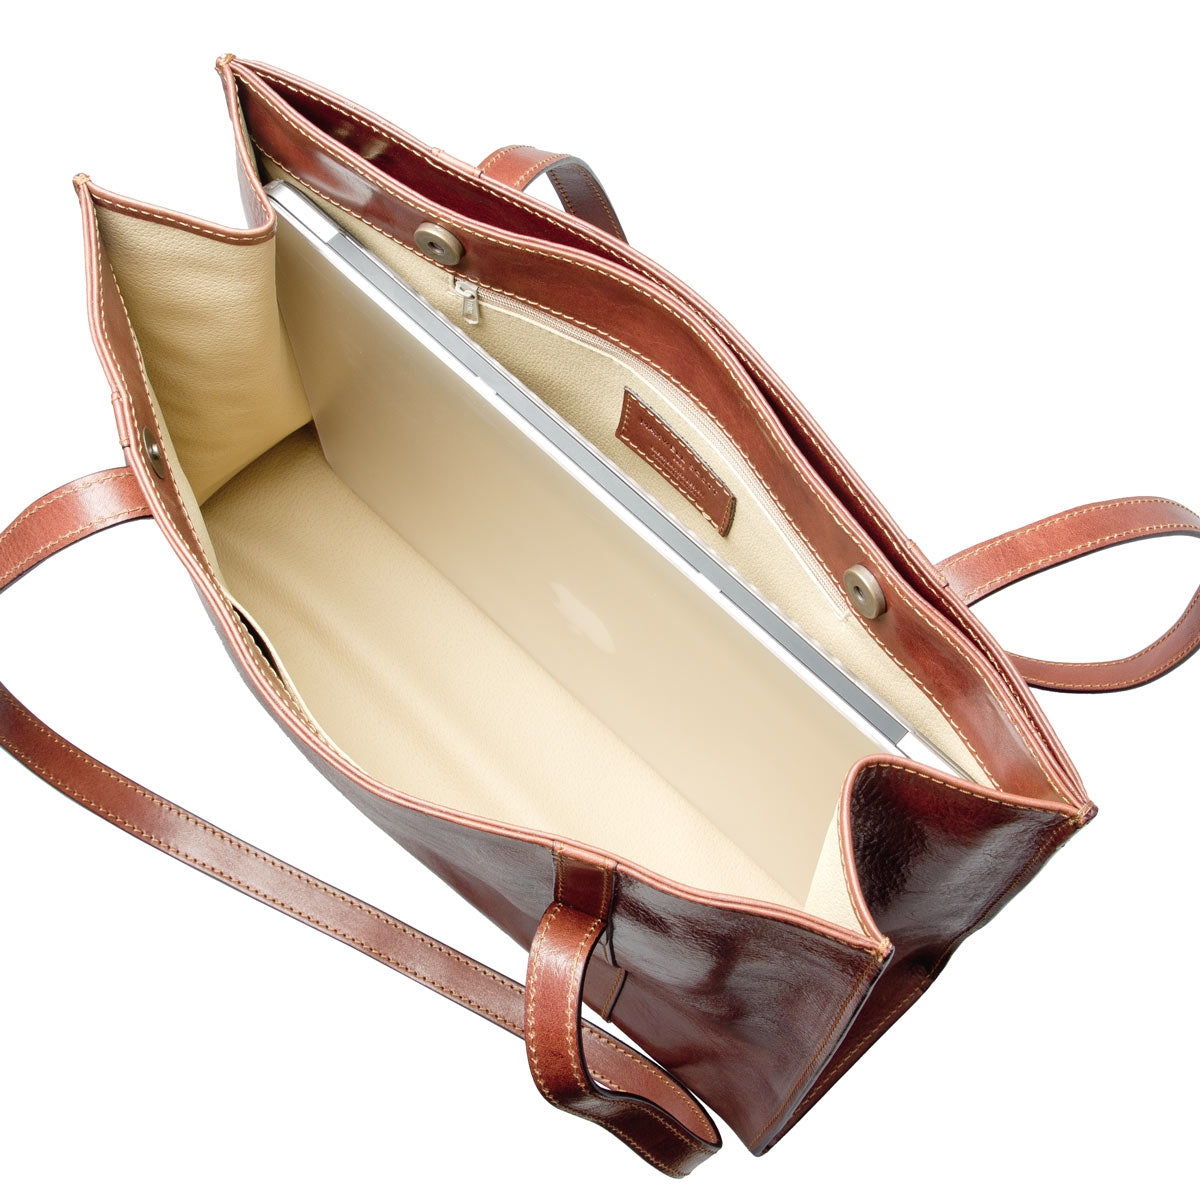 Image 6 of the 'Rivara' Brown Large Leather Shoulder Bag For Ladies